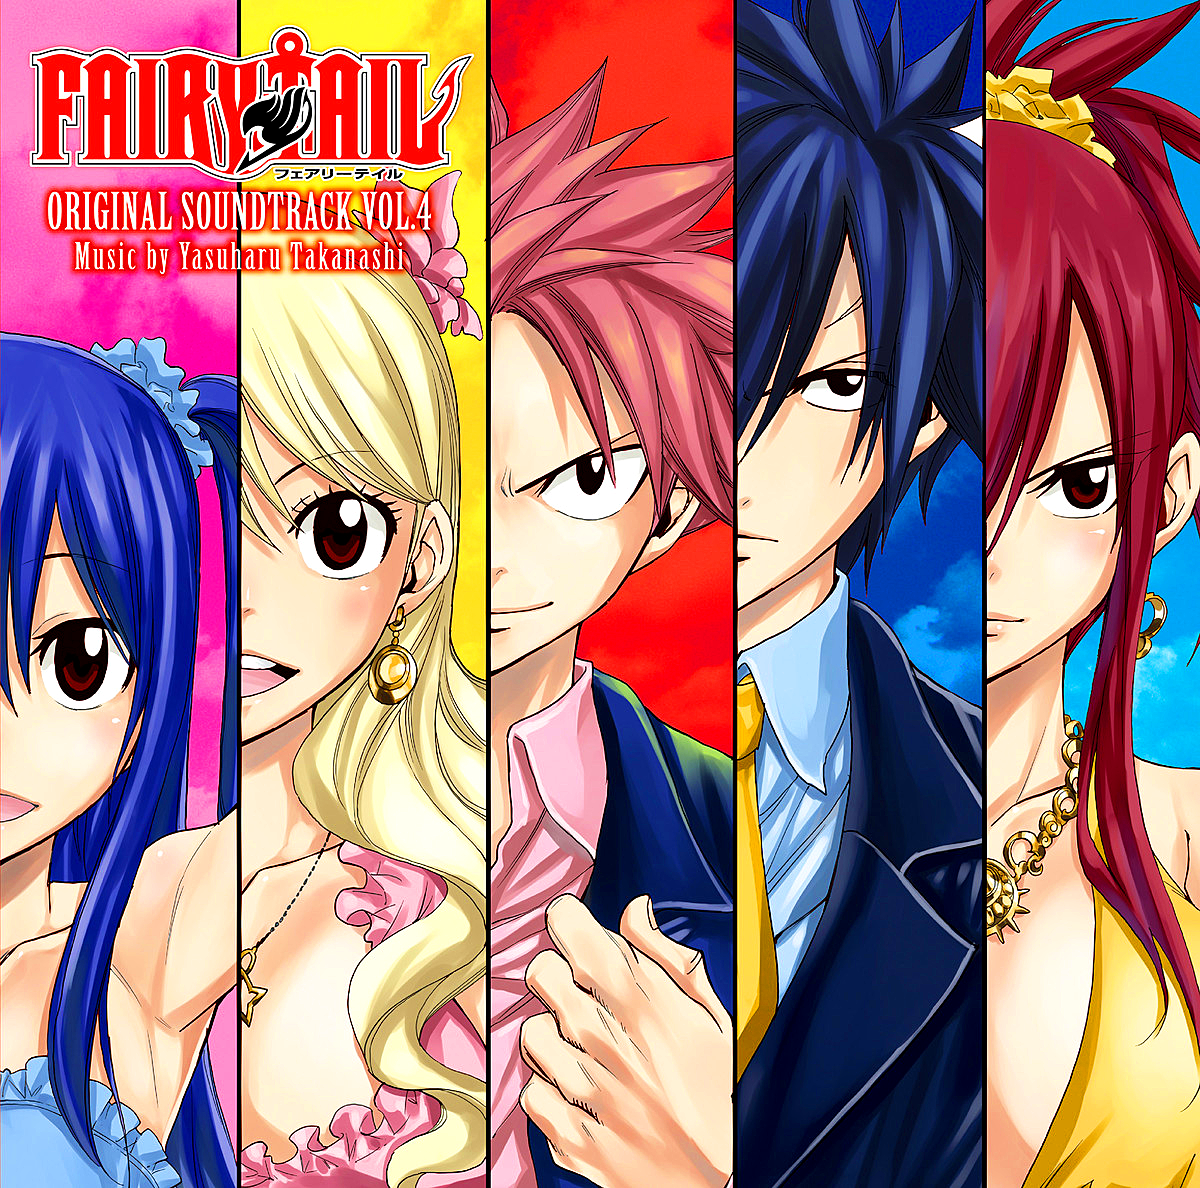 fairy tail original soundtrack vol 4 fairy tail wiki the site for hiro mashima 39 s manga and. Black Bedroom Furniture Sets. Home Design Ideas